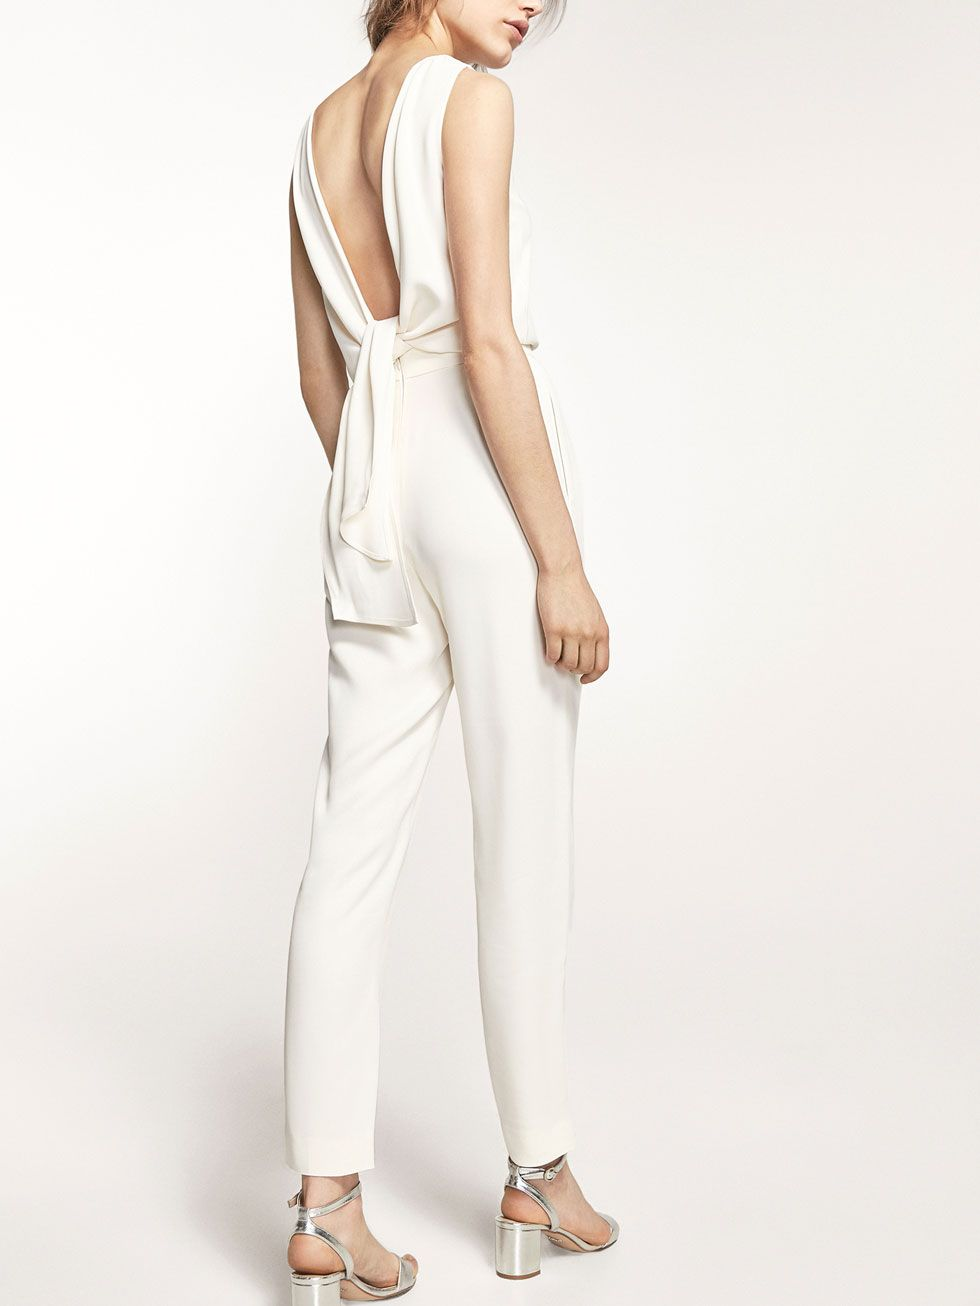 4abab456df12 Autumn Spring summer 2017 Women´s WHITE JUMPSUIT WITH BOW DETAIL at Massimo  Dutti for 180. Effortless elegance!